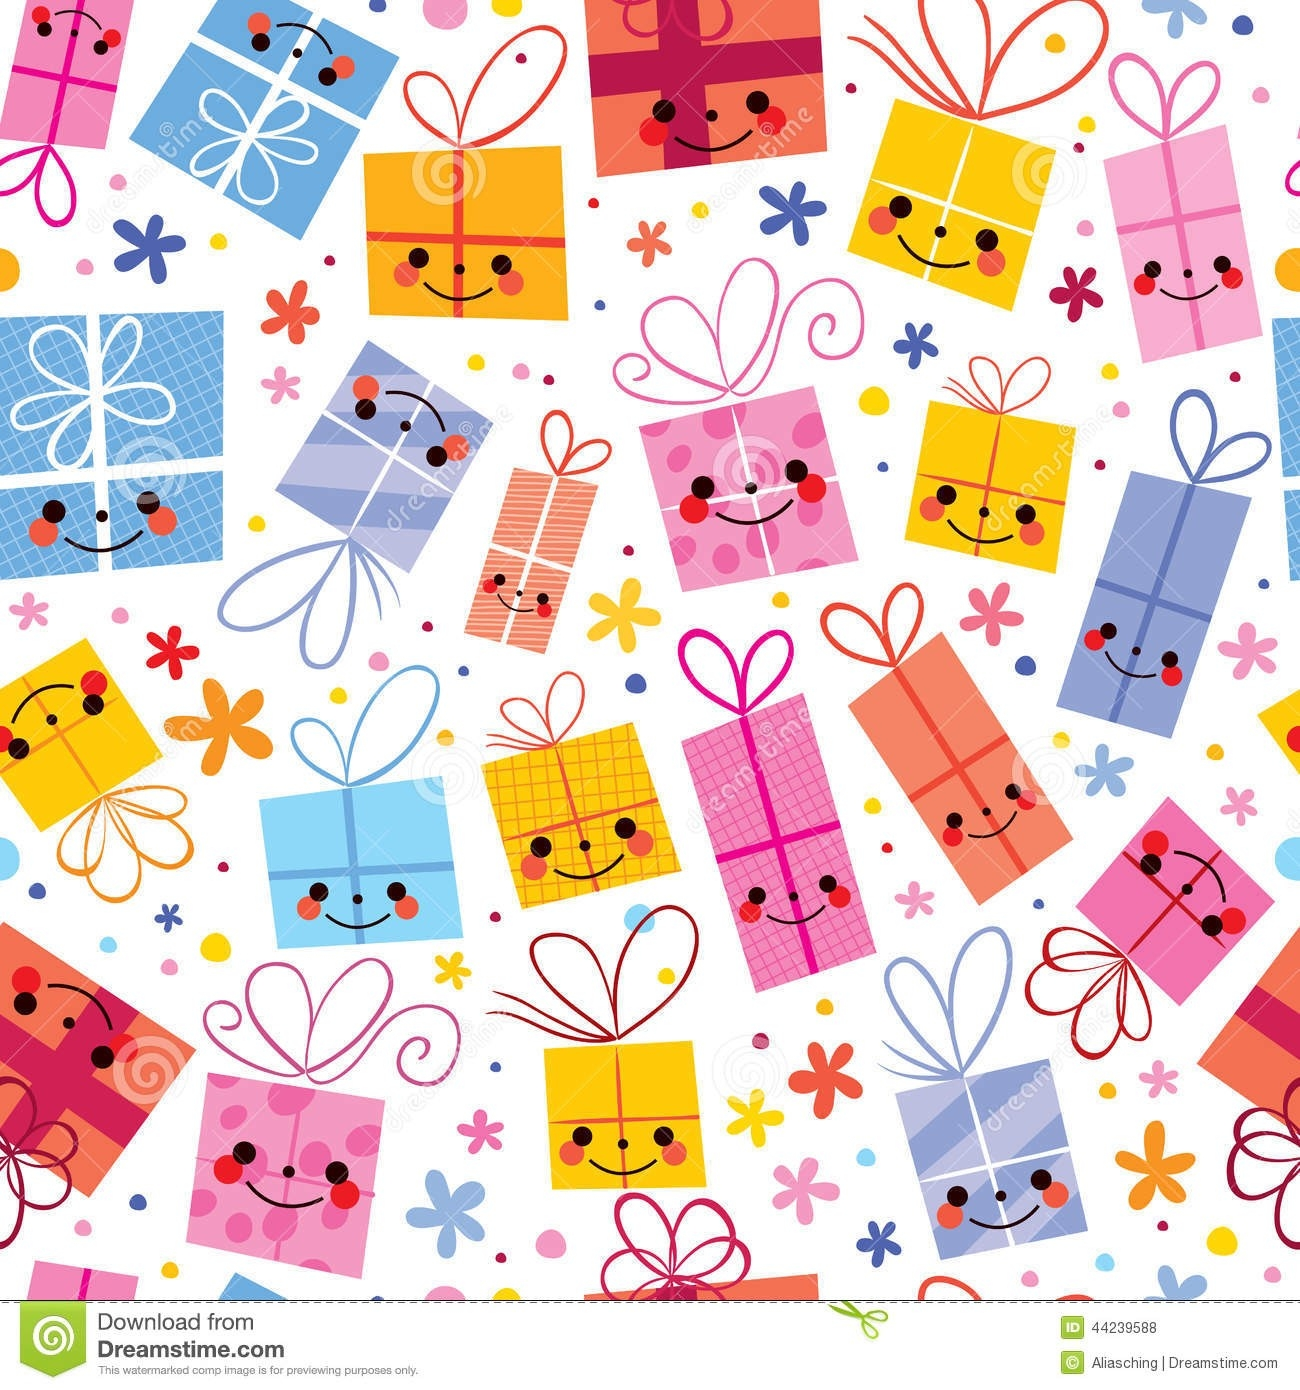 Cute Gifts Wrapping Paper Seamless Pattern Stock Vector intended for Birthday Gift Wrapper Design Pattern 29522